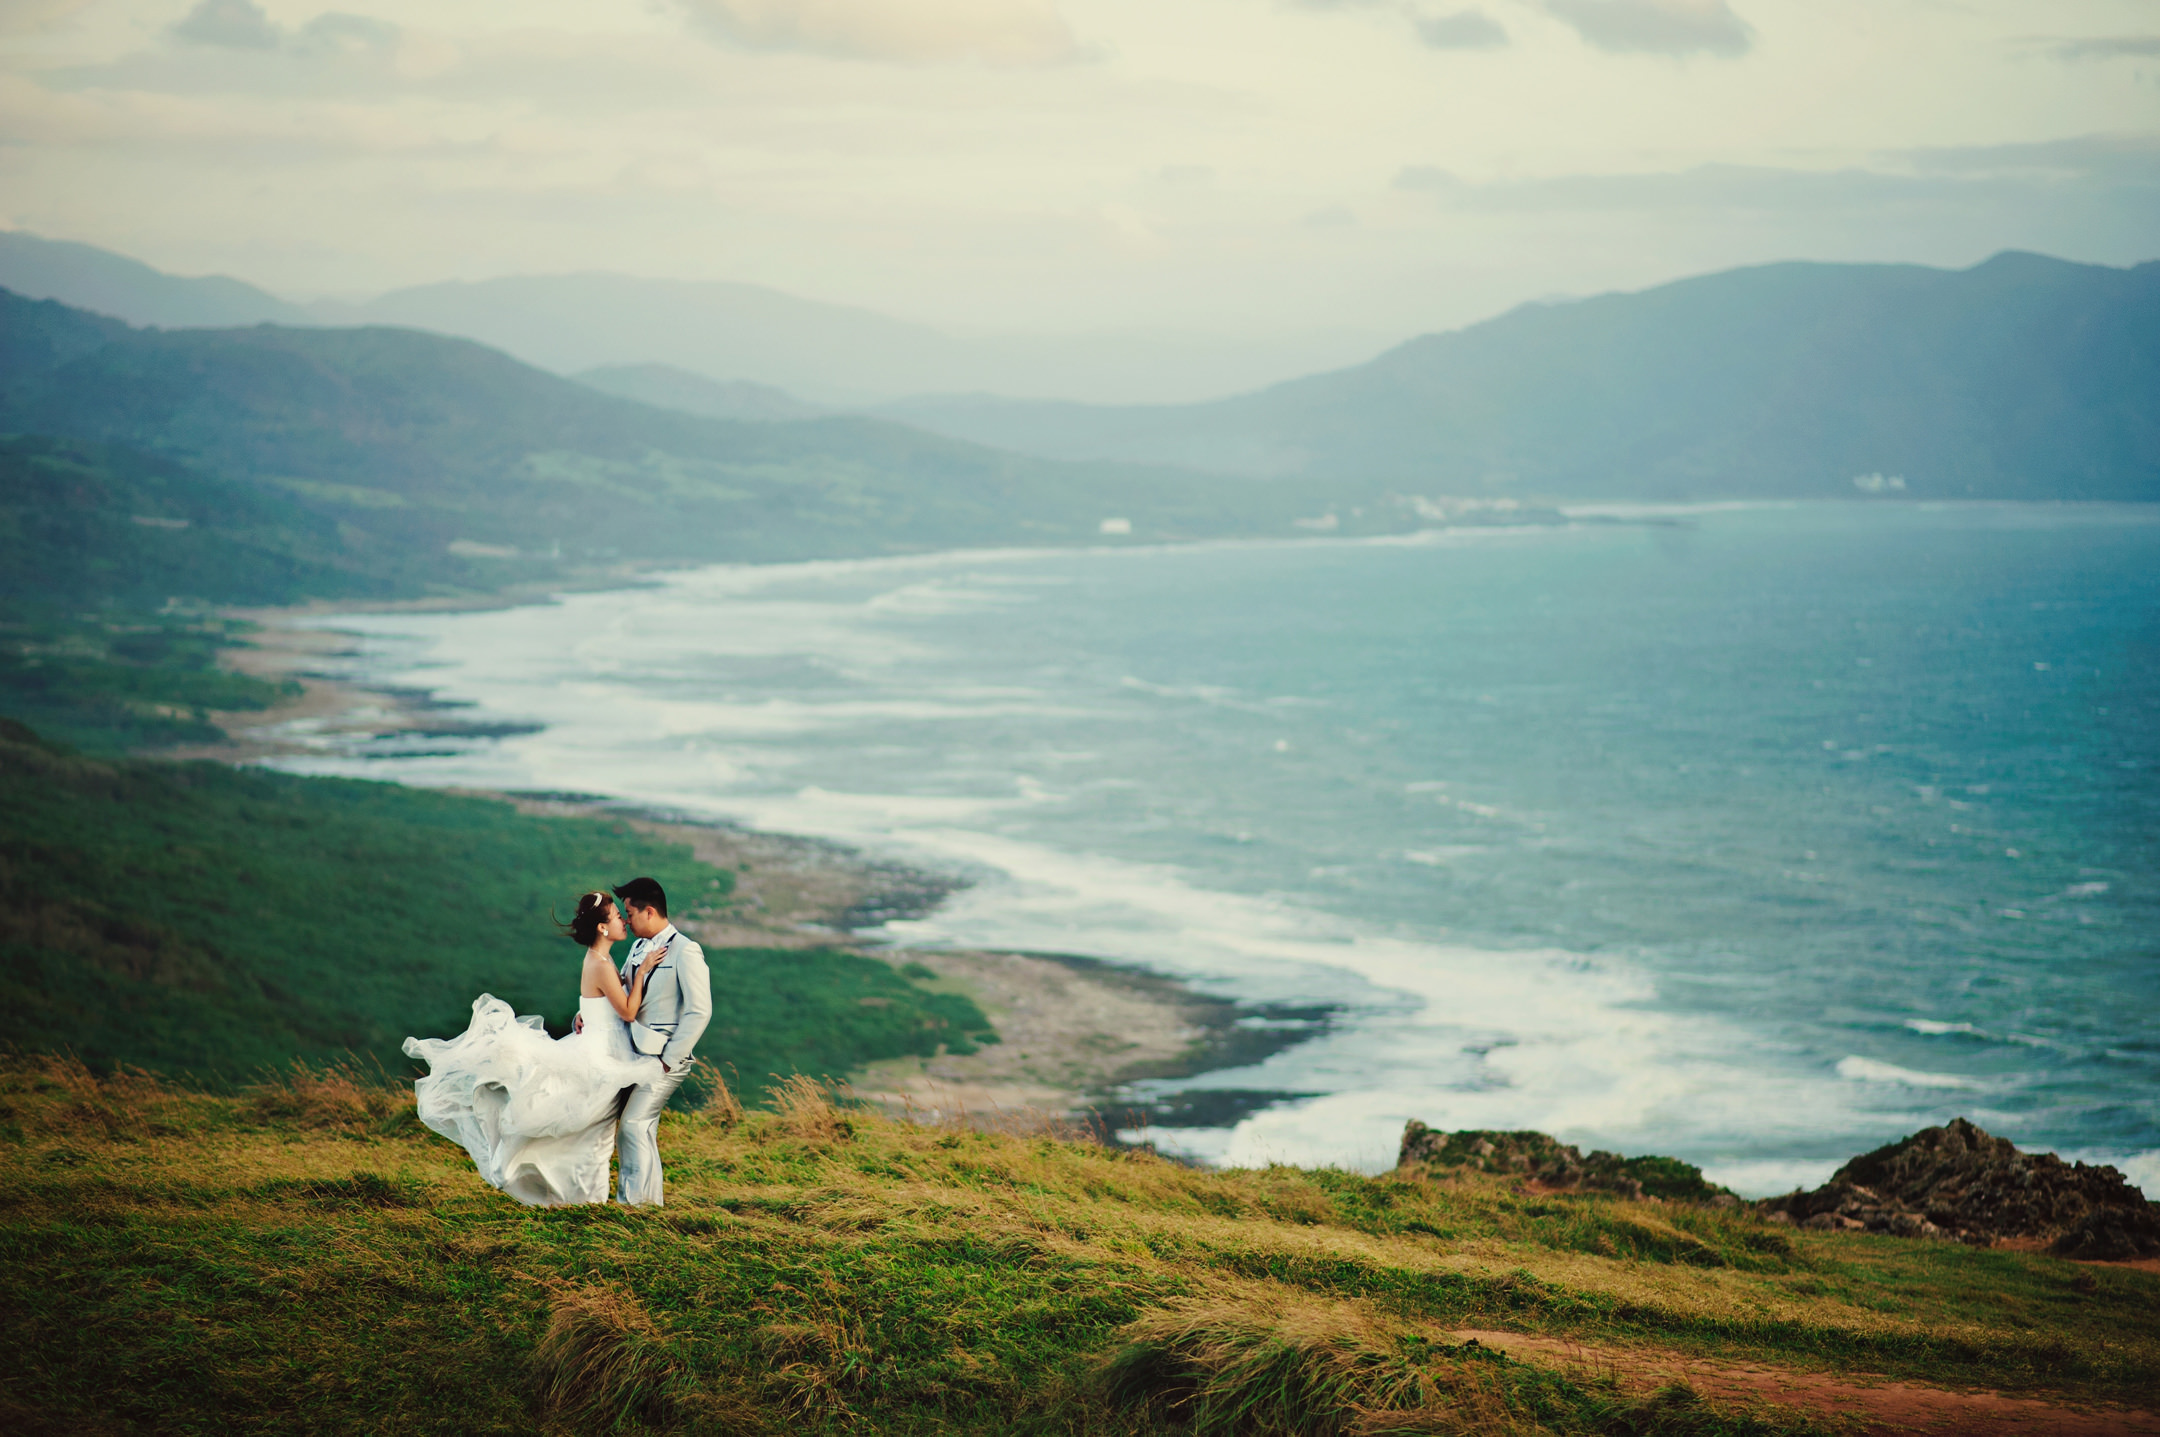 Chris_Hui_婚禮_婚紗照_pre_wedding_photography_best_016_Taiwan_Kenting_台湾_垦丁.jpg